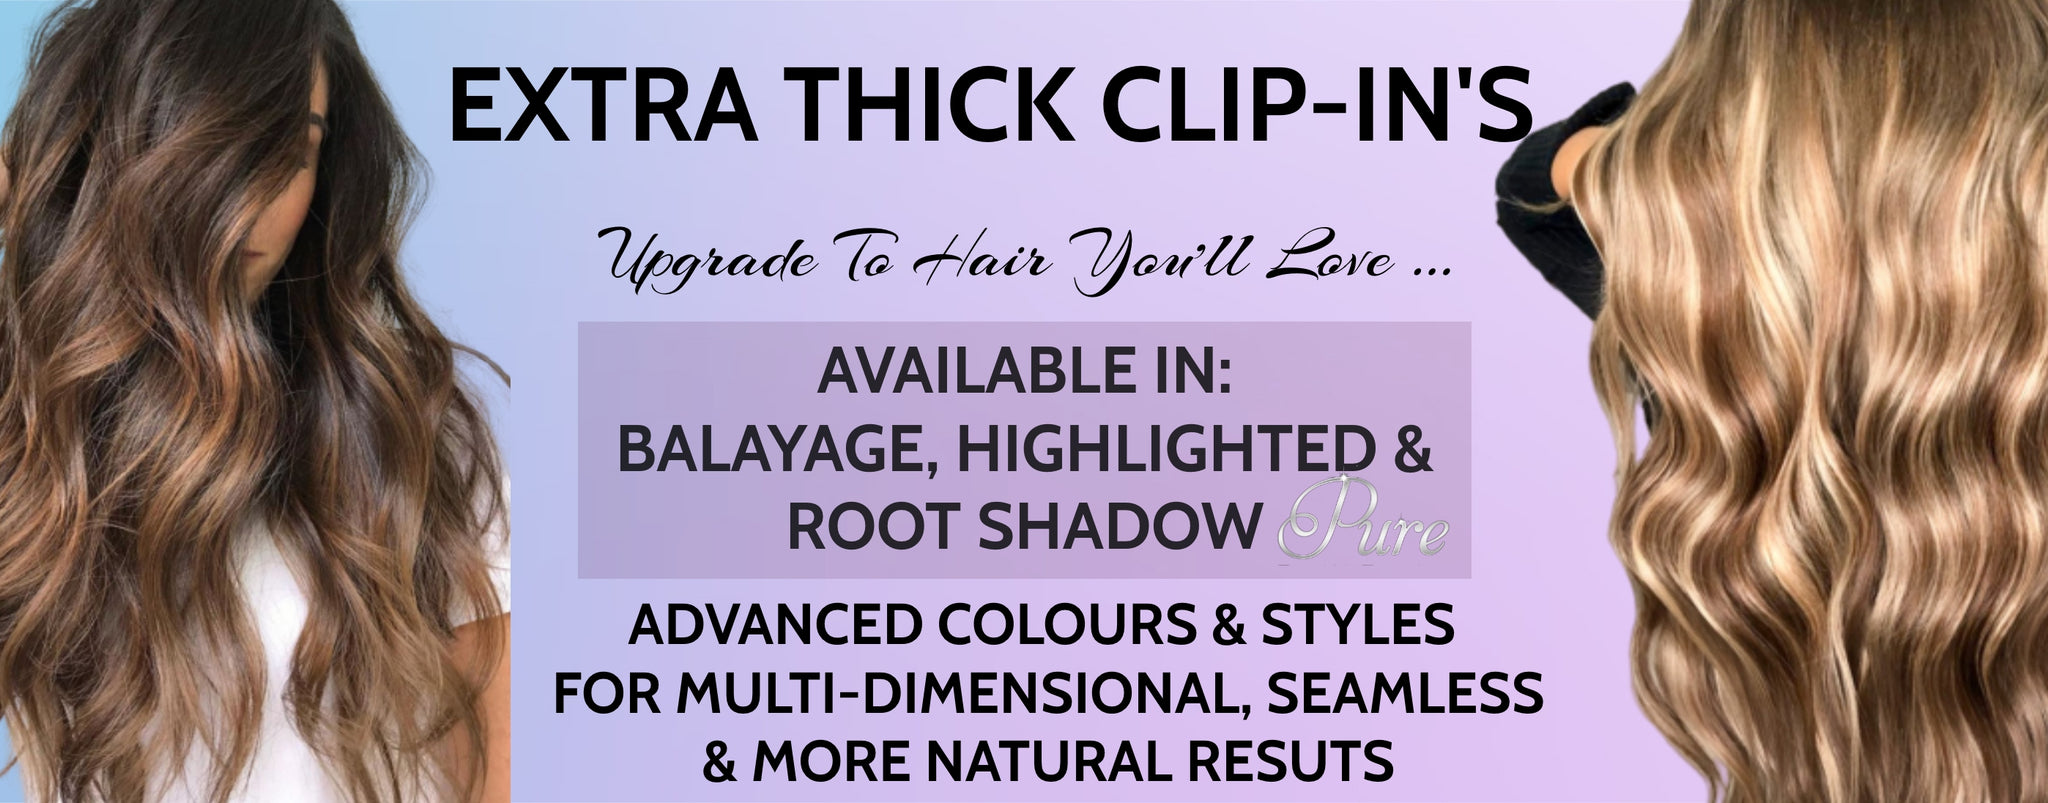 balayage clip in hair extensions ombre clip in hair extensions Australia